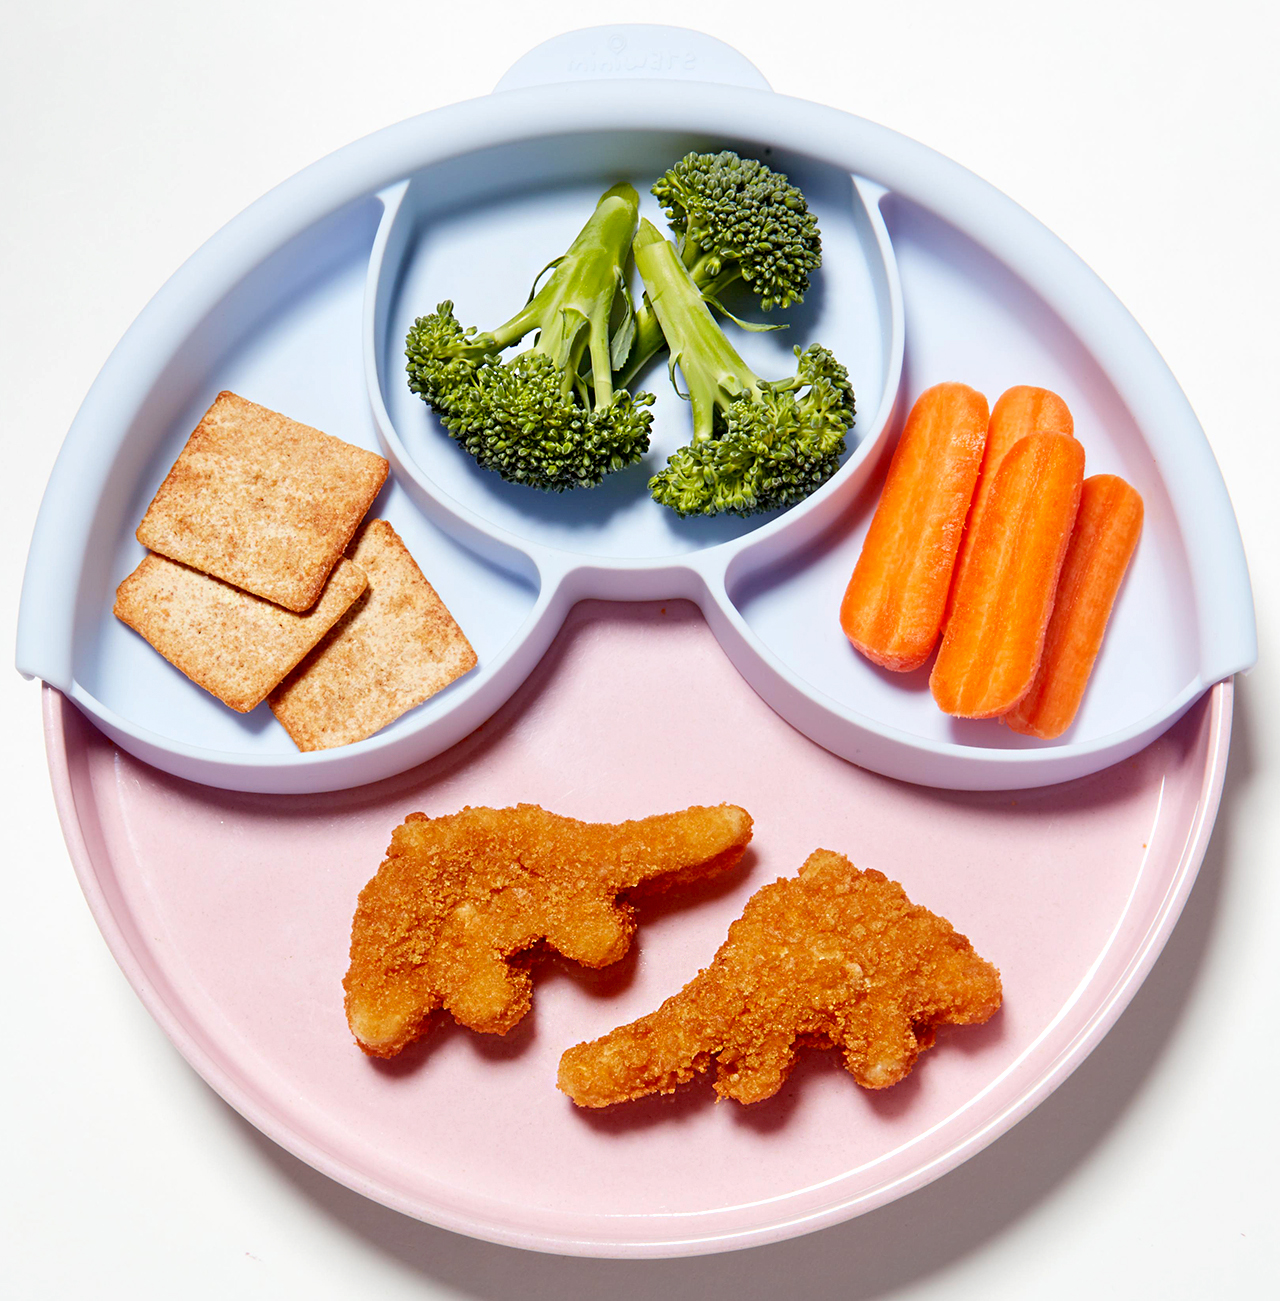 Child's plate of food